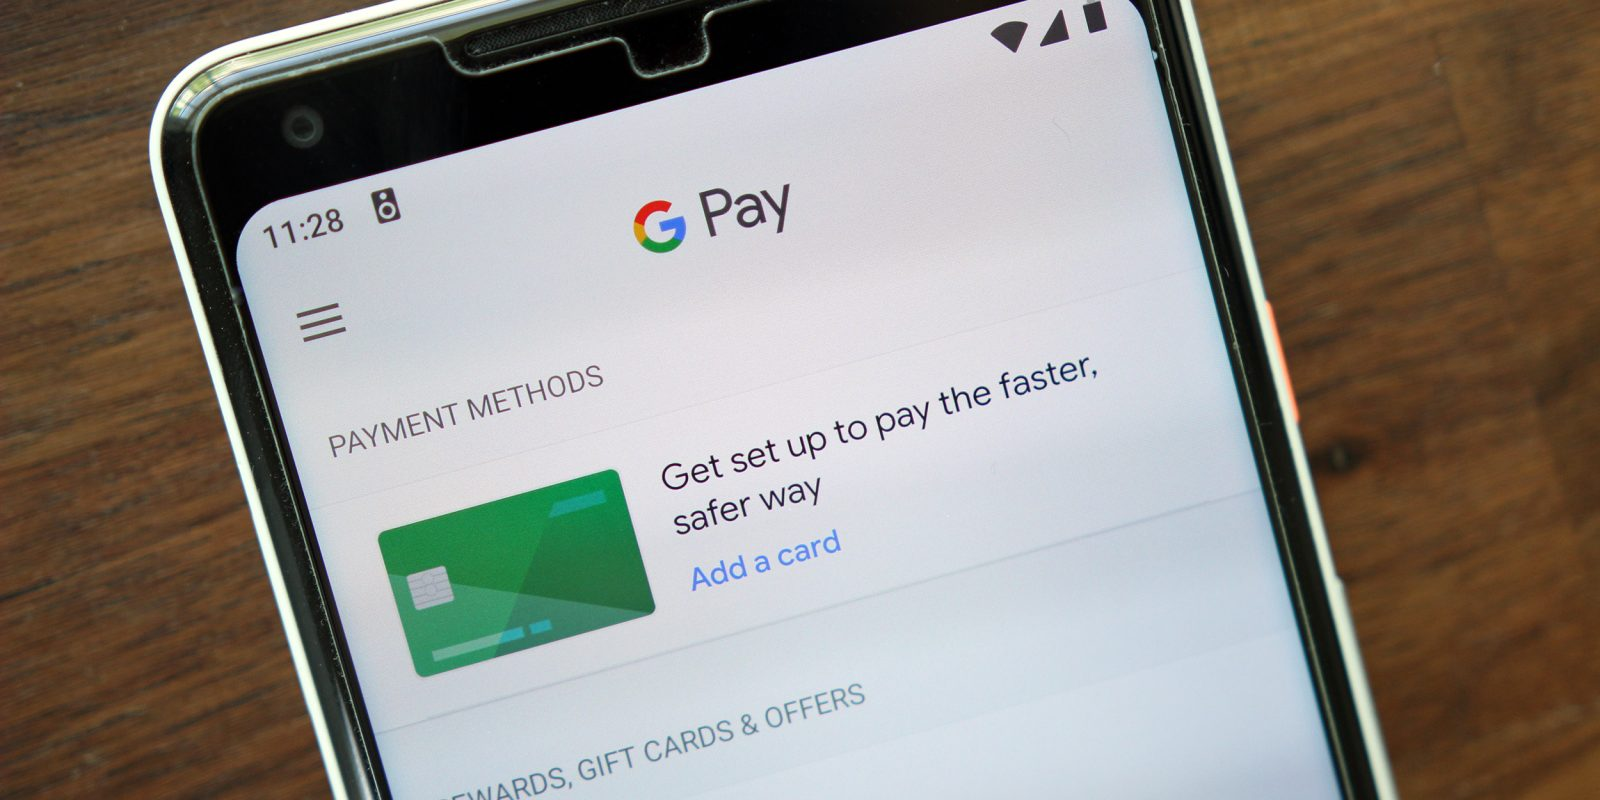 Google Pay now officially available in Norway, Denmark